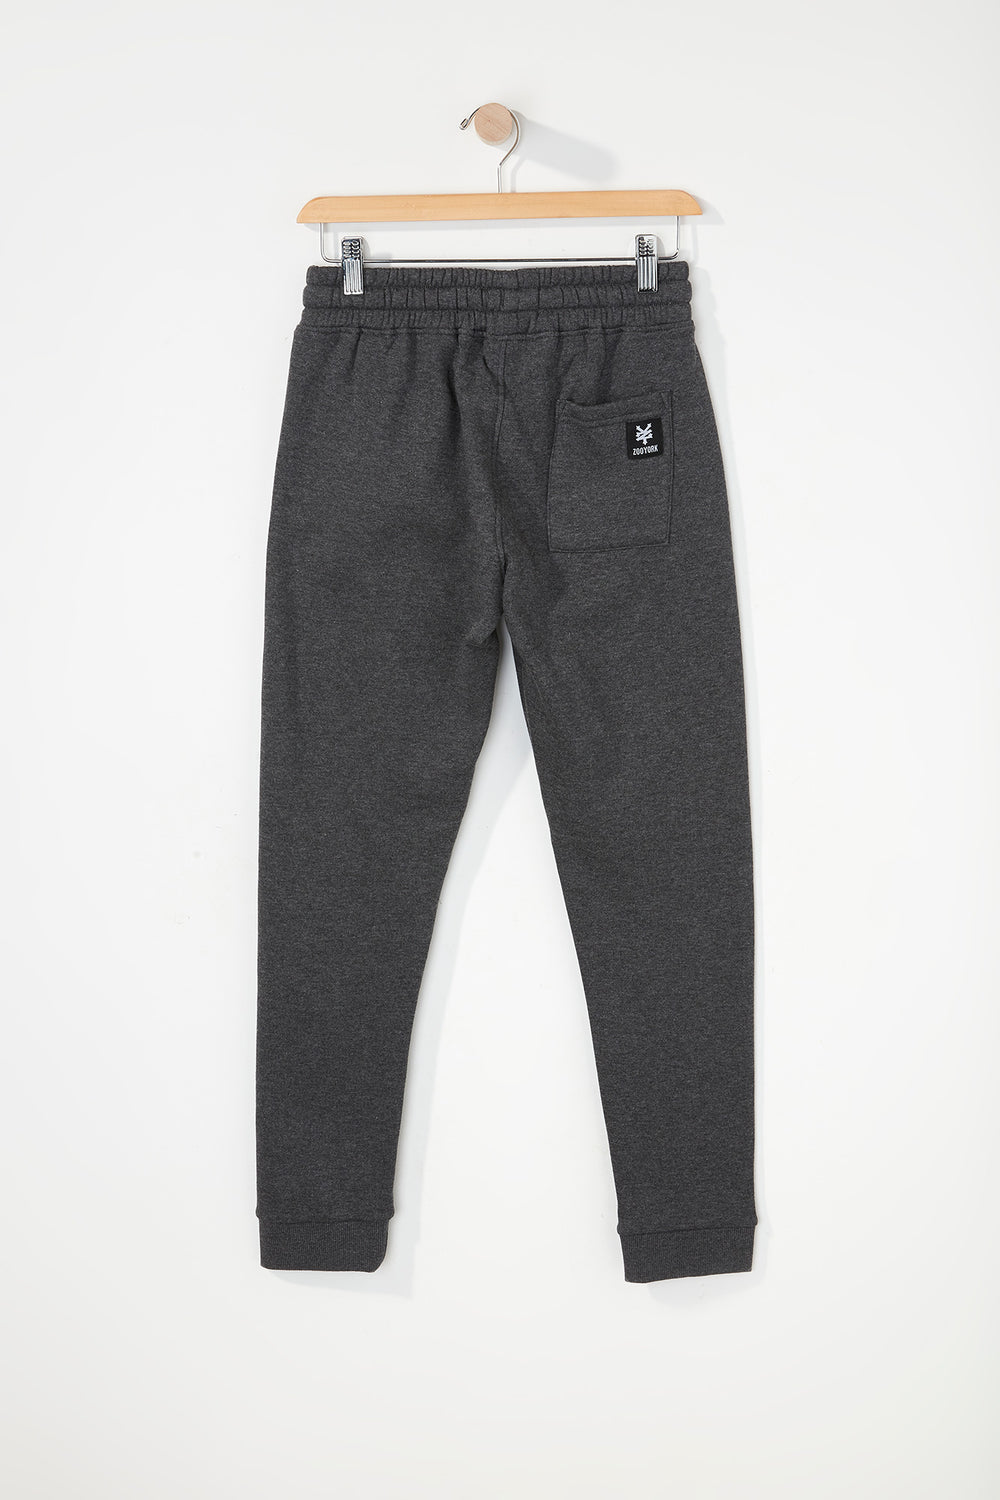 Zoo York Boys Embroidered Logo Jogger Charcoal